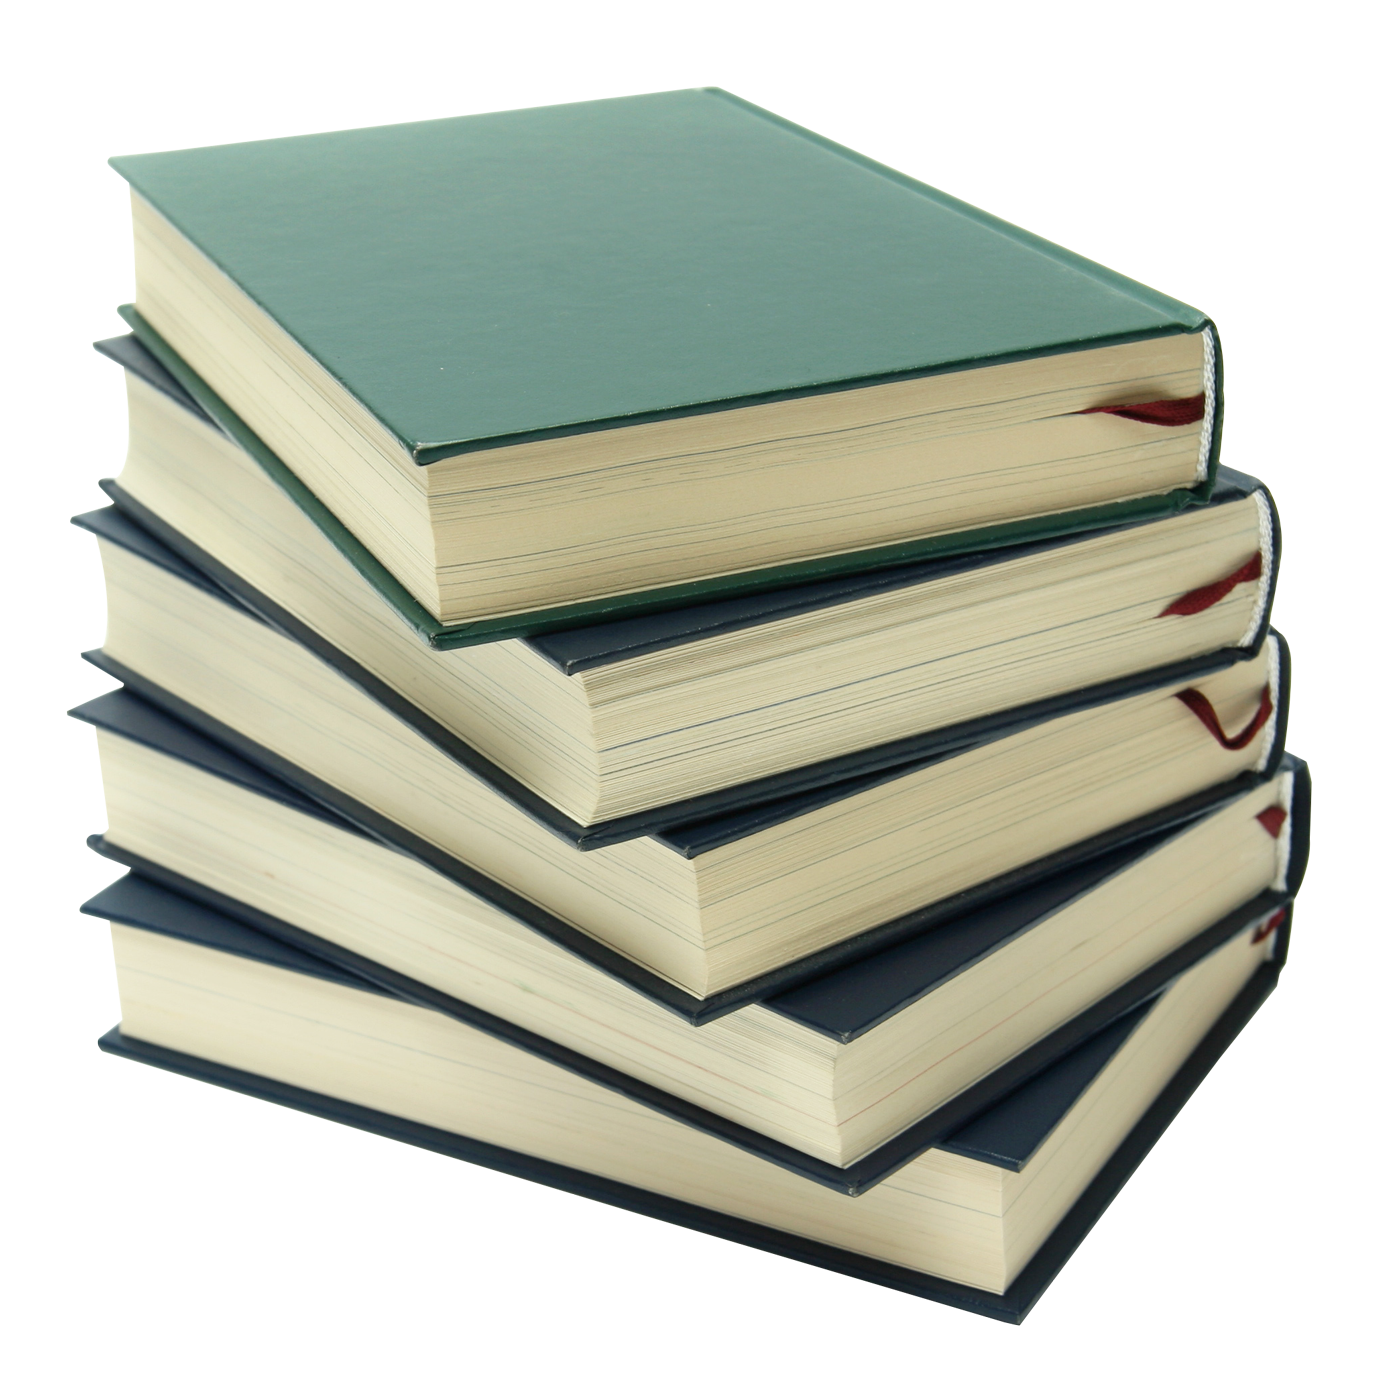 Book PNG - 16952